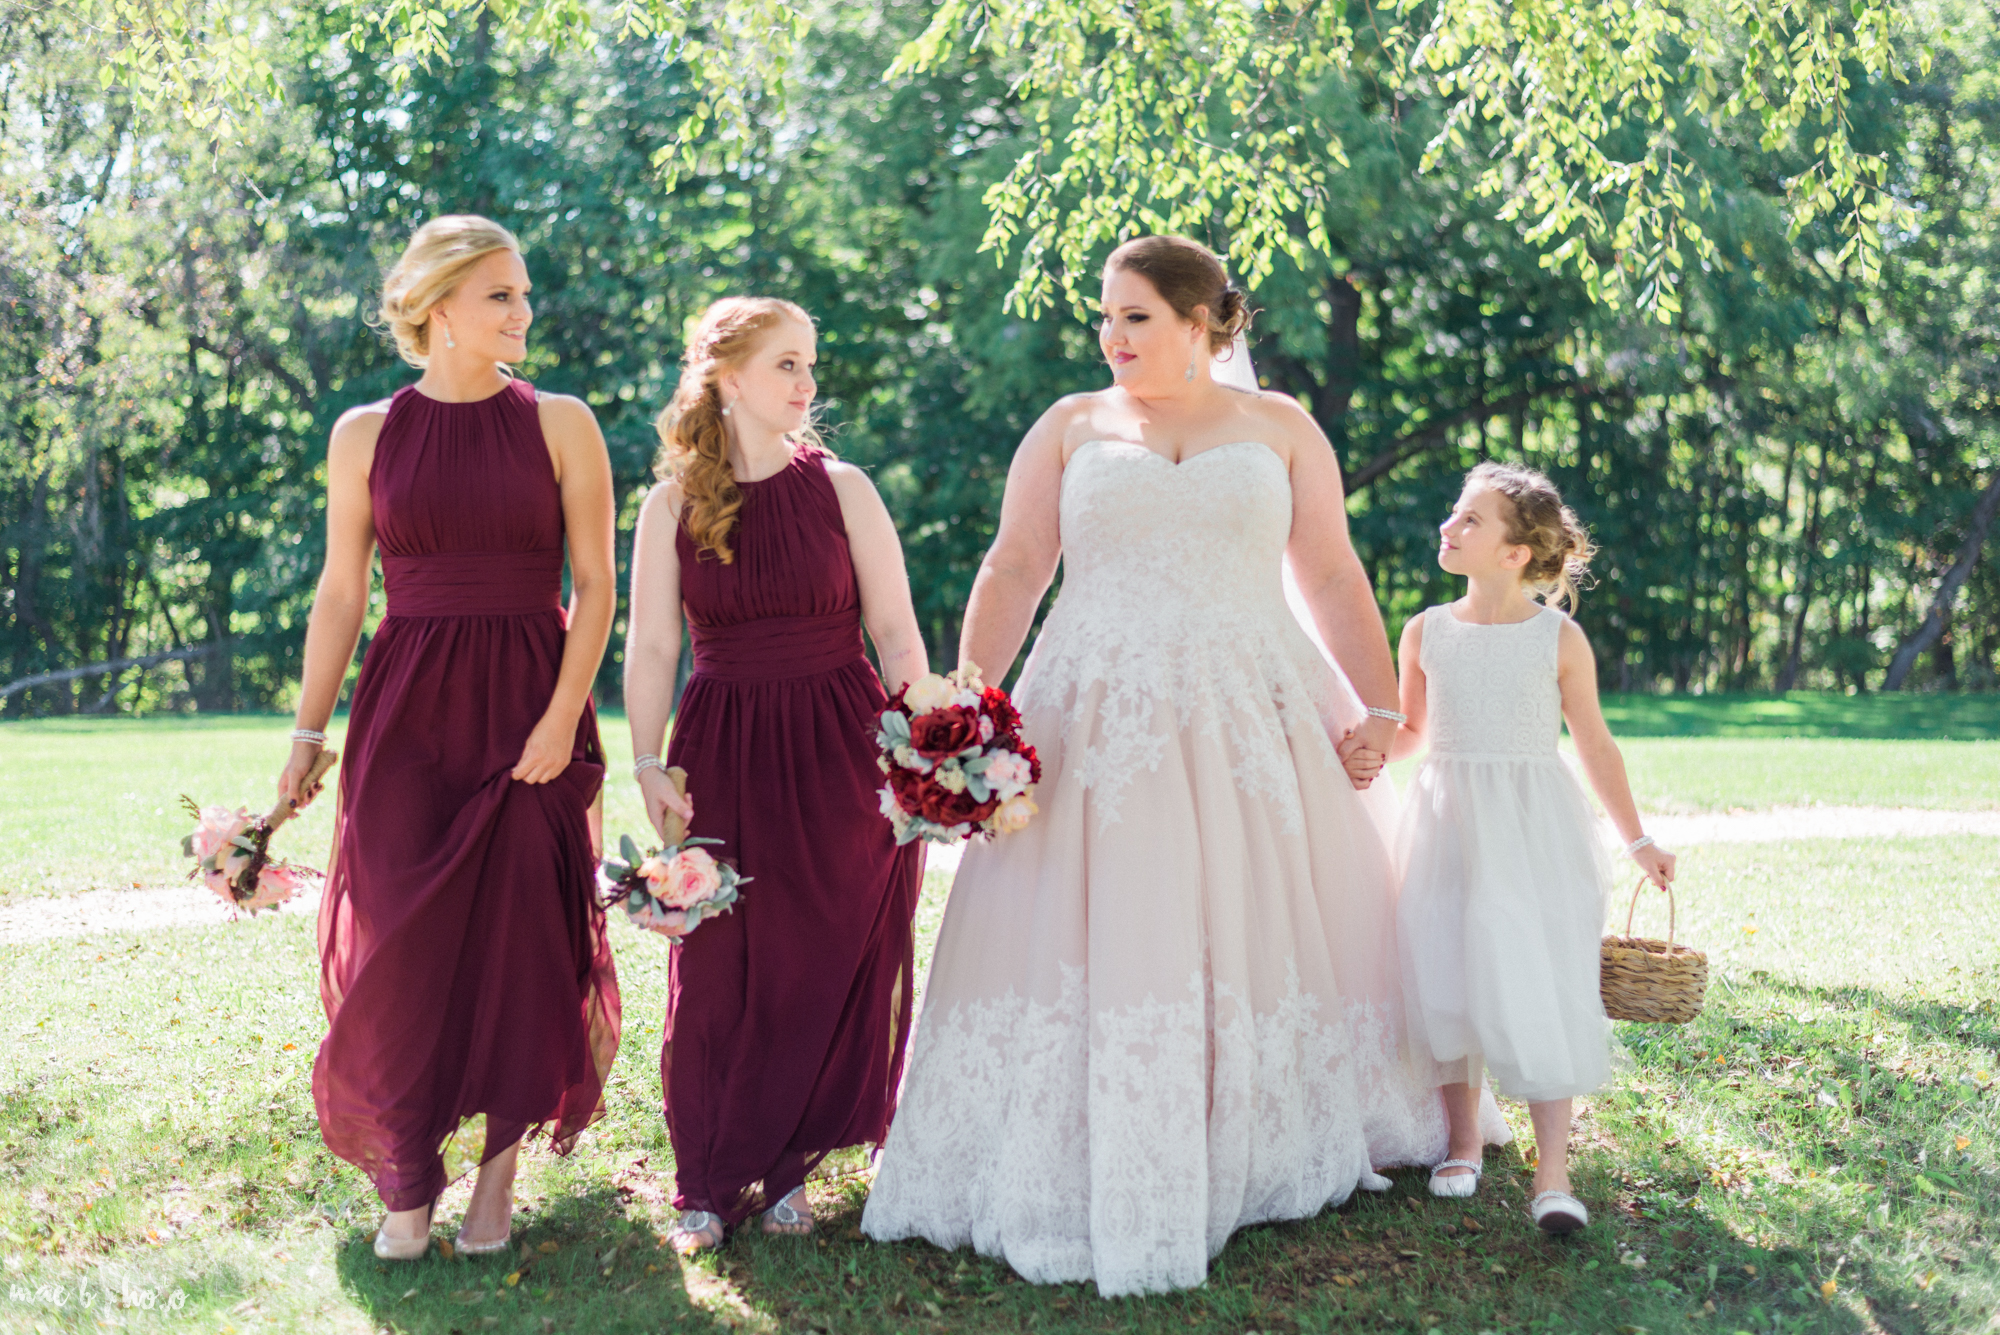 Amber & Kyle's Rustic Barn Wedding at SNPJ in Enon Valley, PA by Mae B Photo-52.jpg